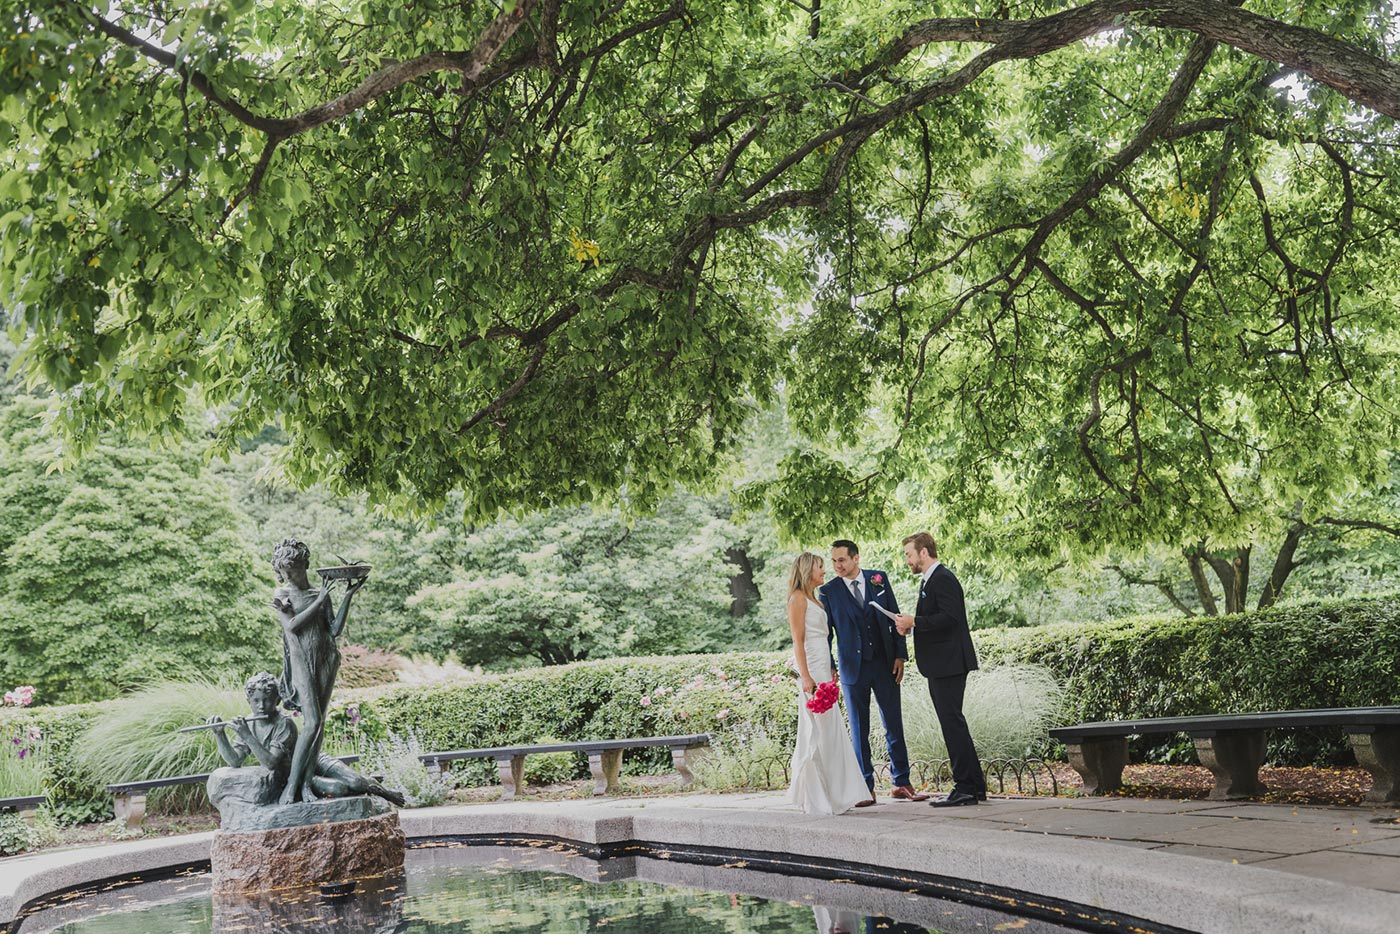 Weddings by Hanel -06.01.19 - Jane & Neil - Conservatory Garden Elopement - 7